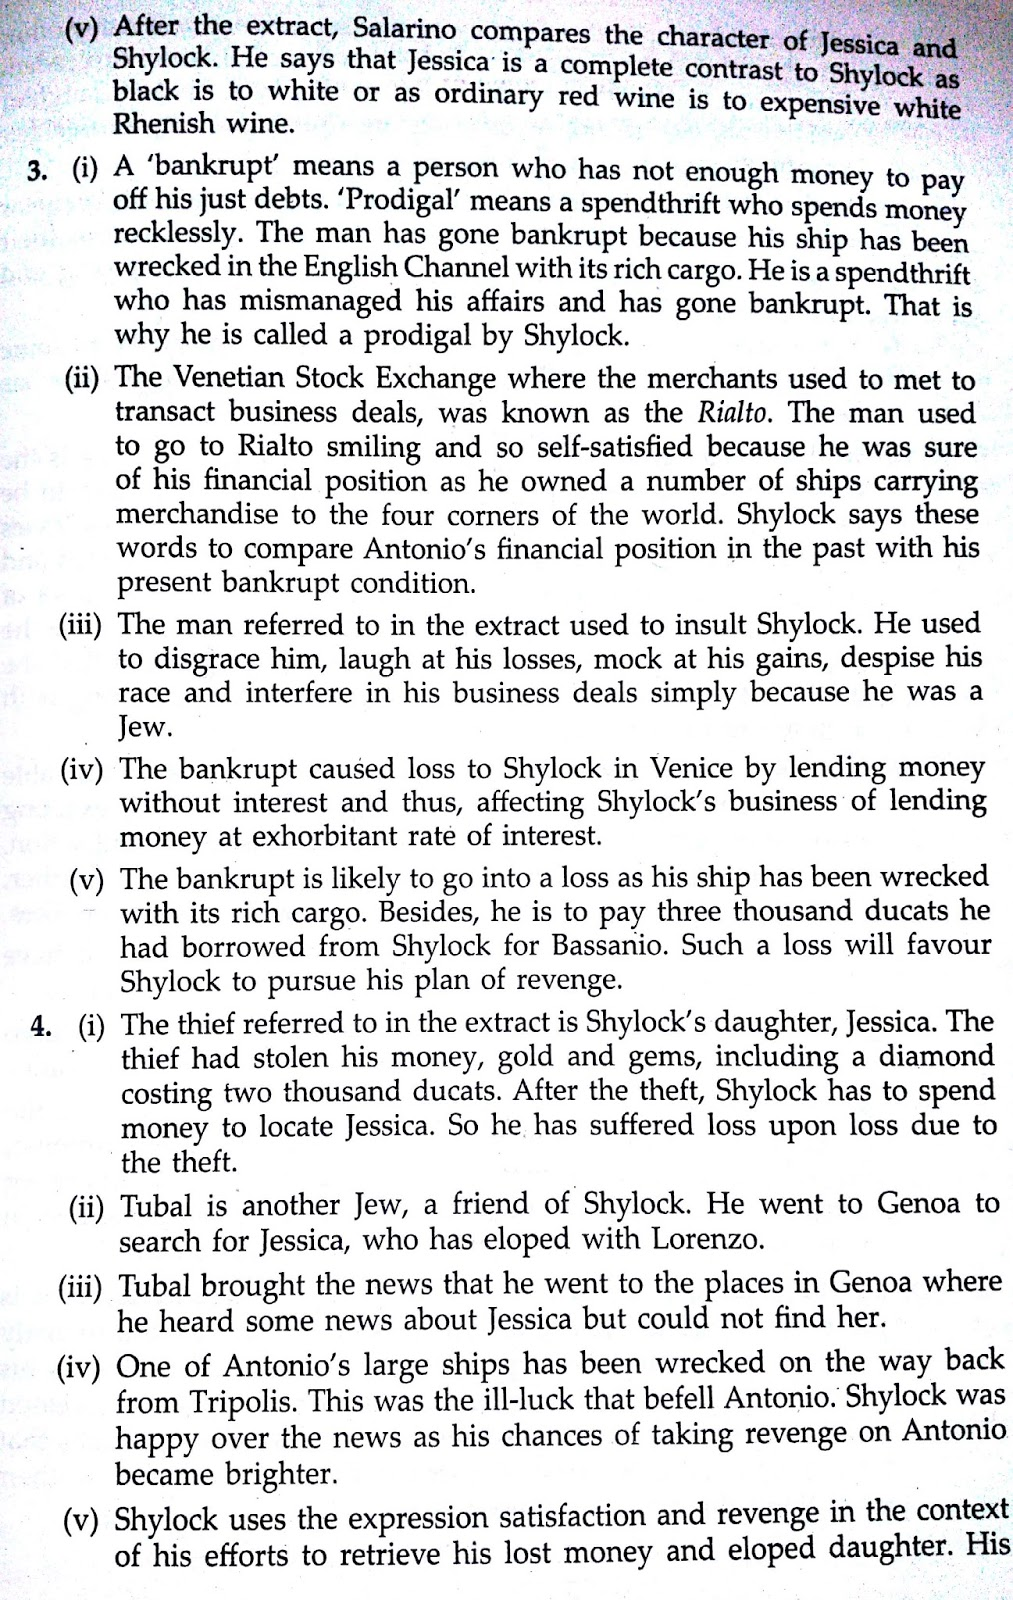 Workbook Answers/Solutions of The Merchant of Venice, Act 3 Scene 1